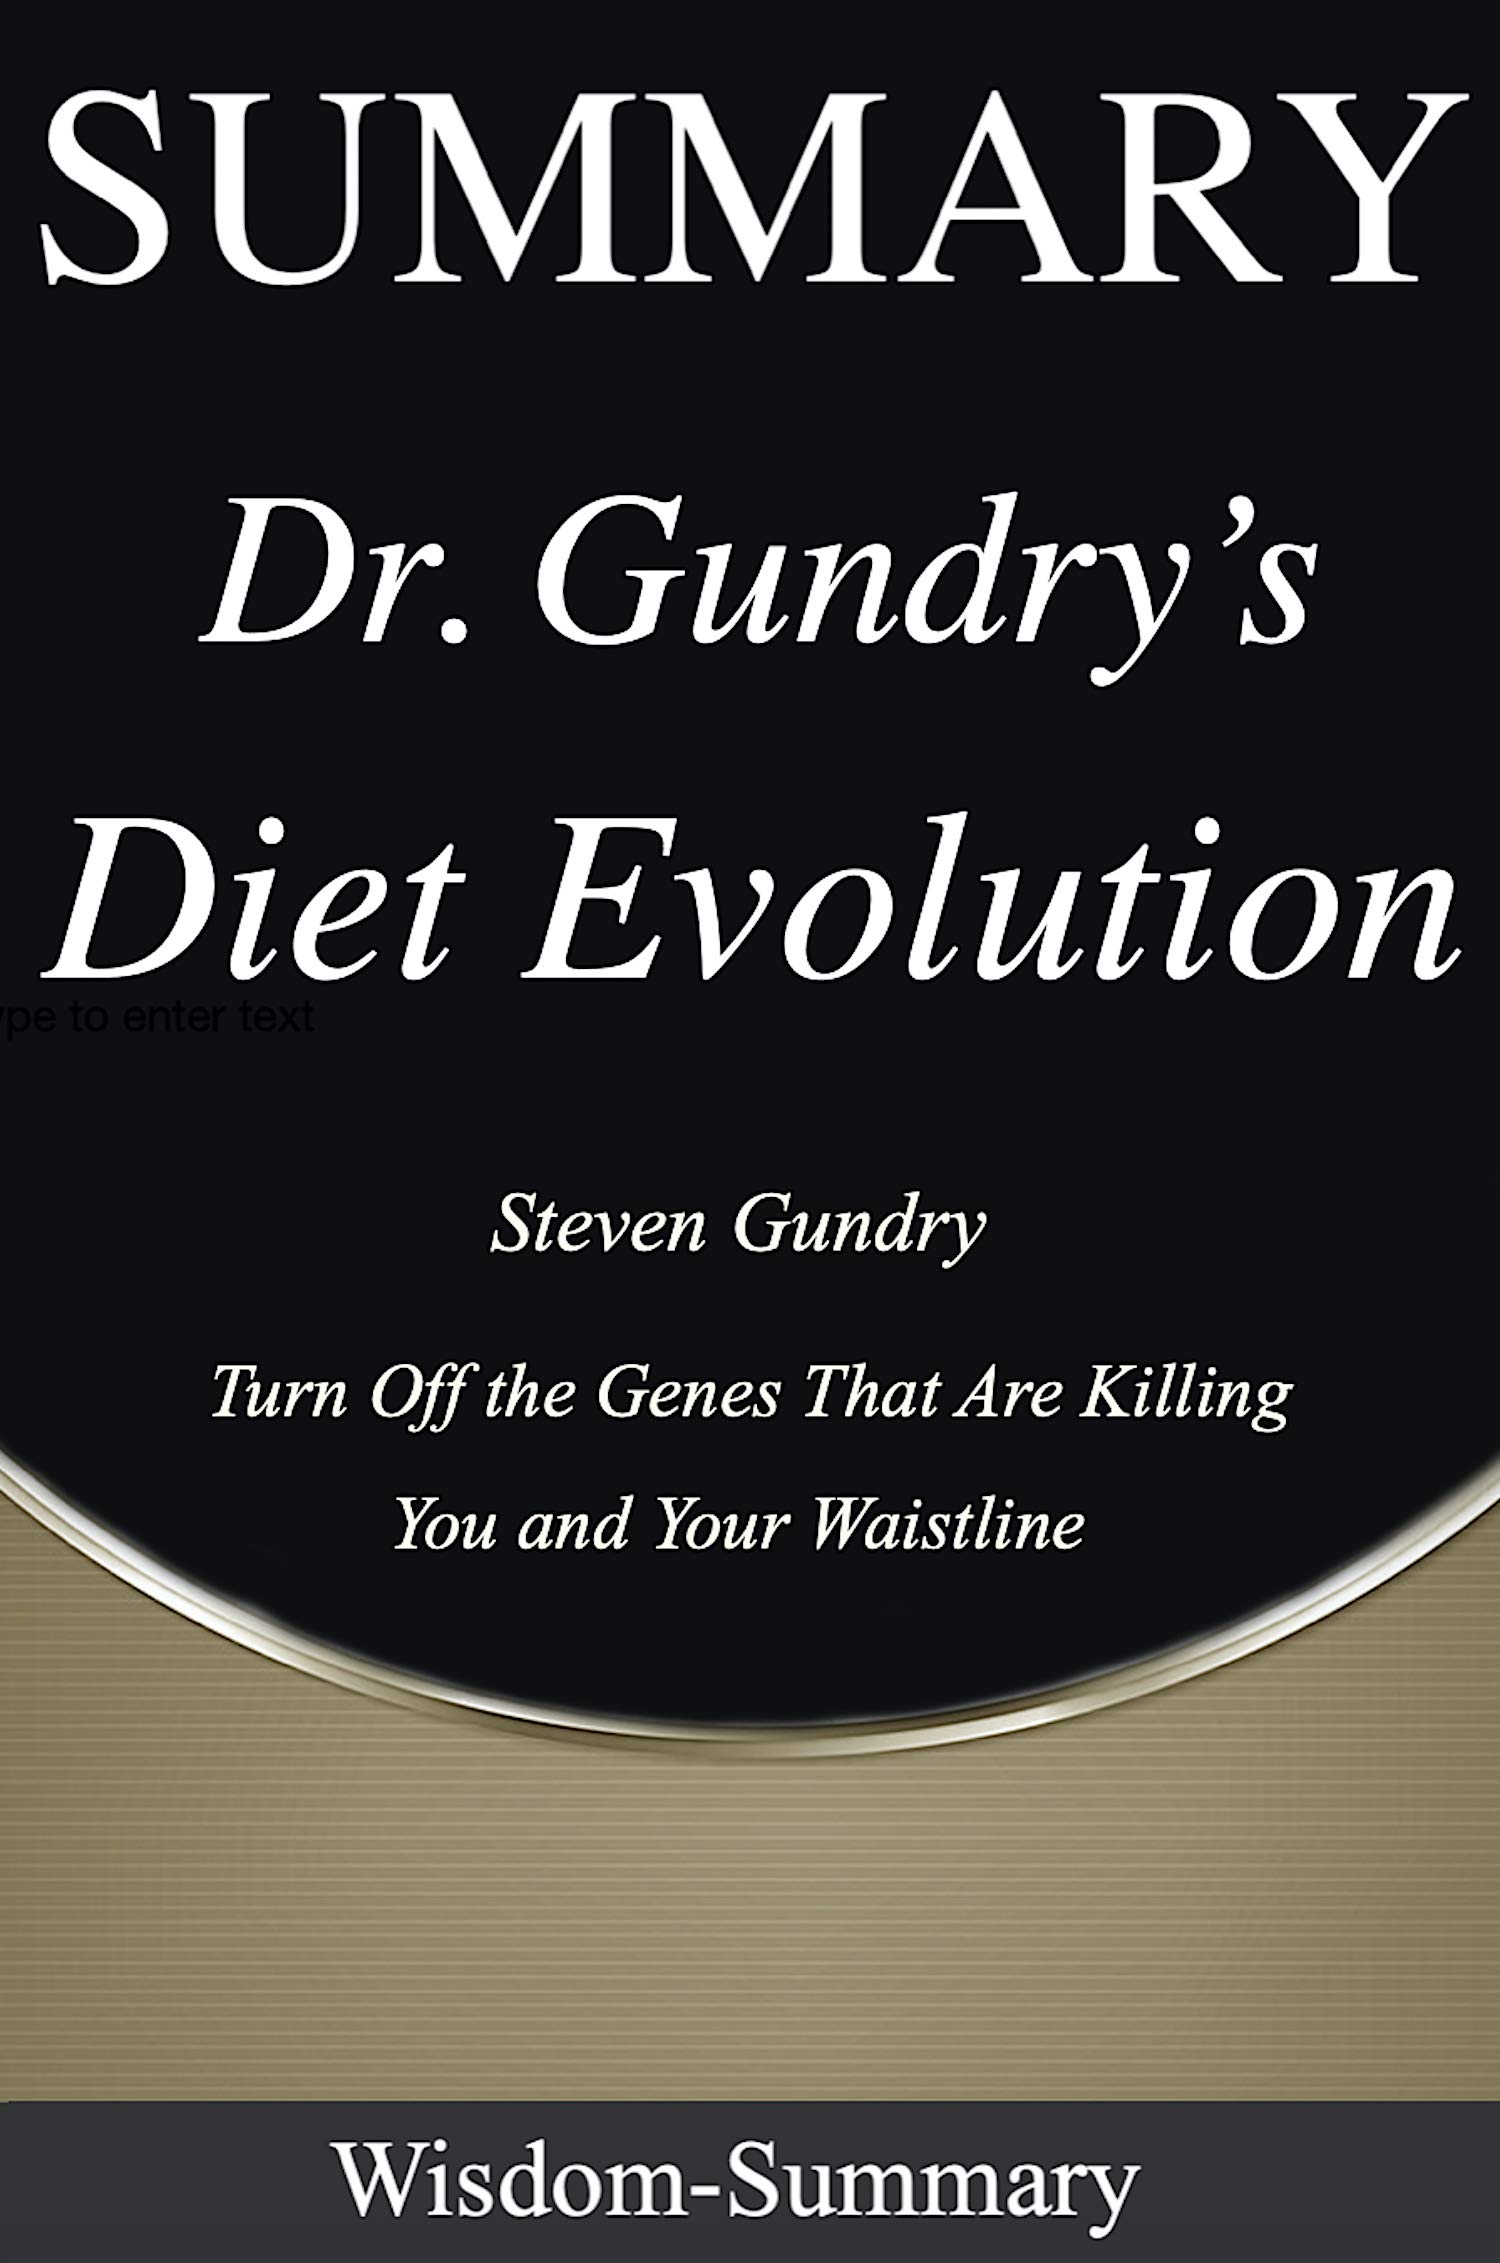 Summary: Dr. Gundry's Diet Evolution - Turn Off the Genes That Are Killing You and Your Waistline | A Comprehensive Summary of Steven Gundry's Book (Wisdom Summary 6)